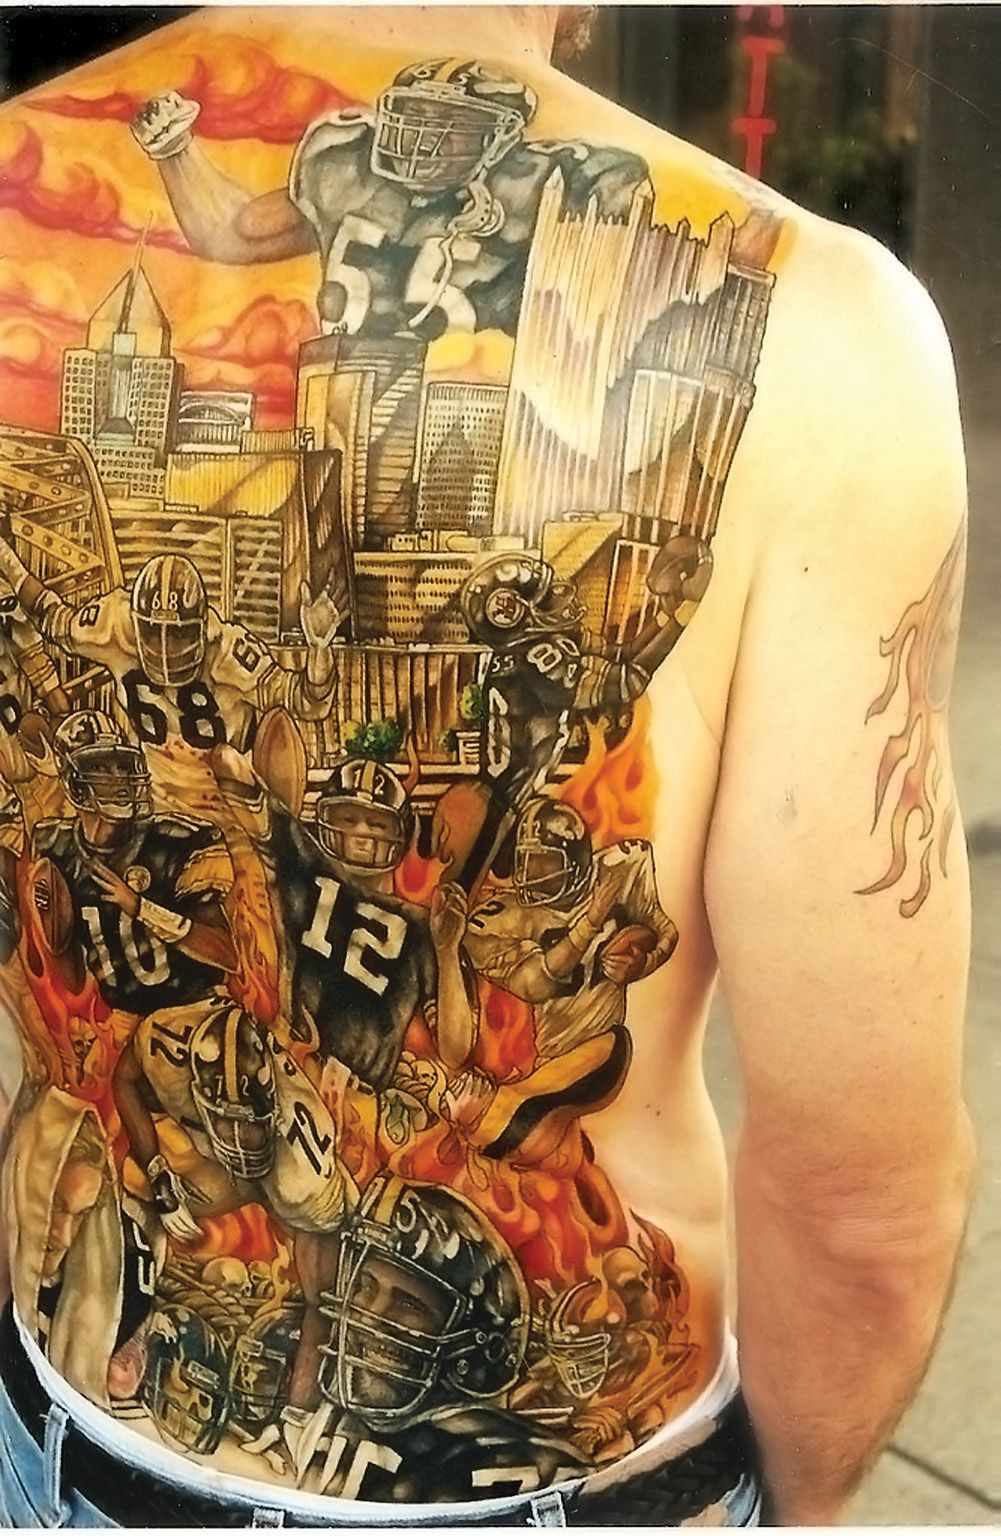 Awesome! logo tattoos, | Pittsburgh Steelers steelers